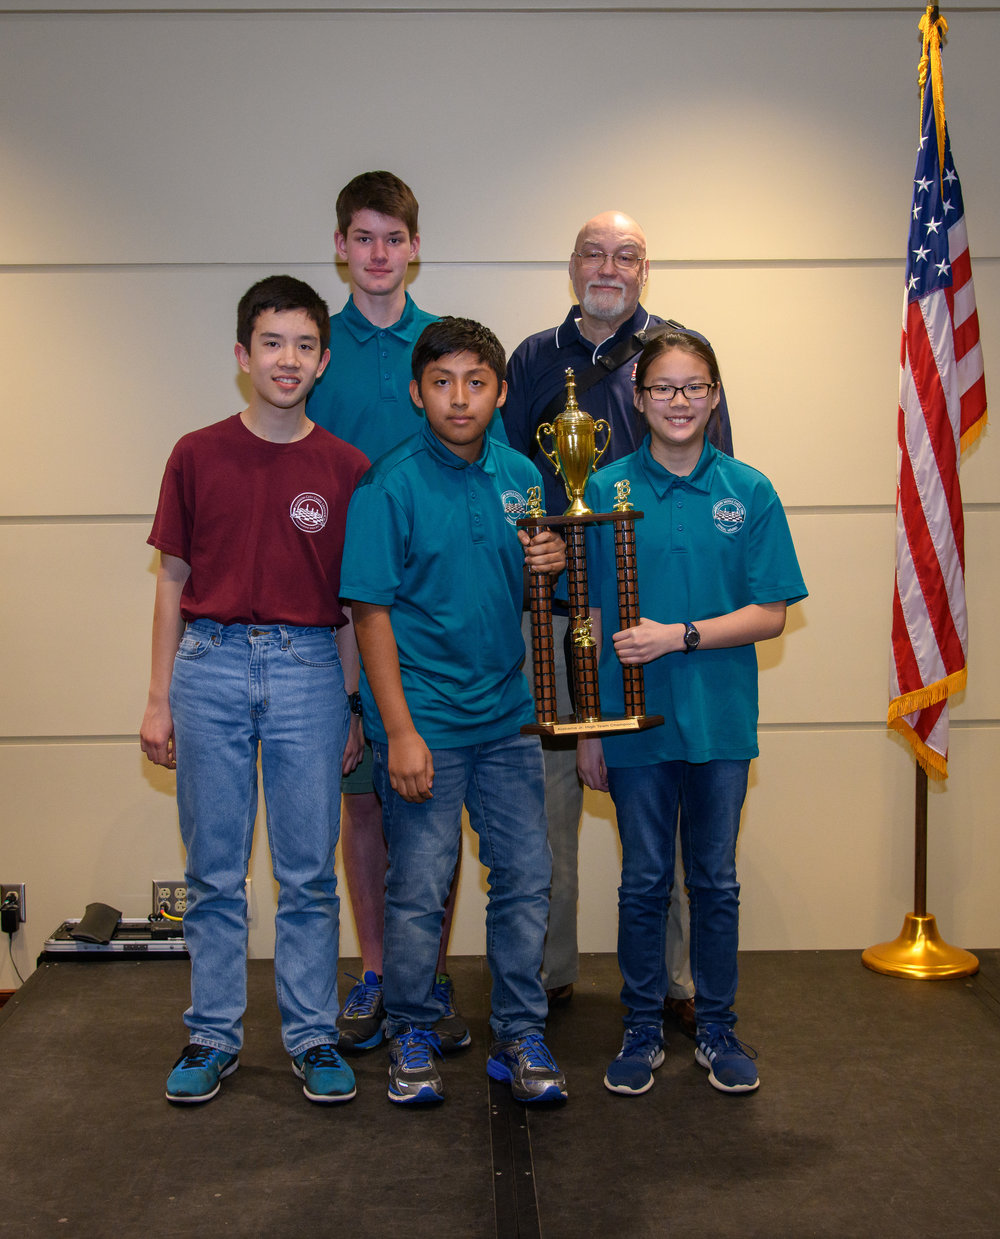 Discovery Middle: K-9 Team Champions